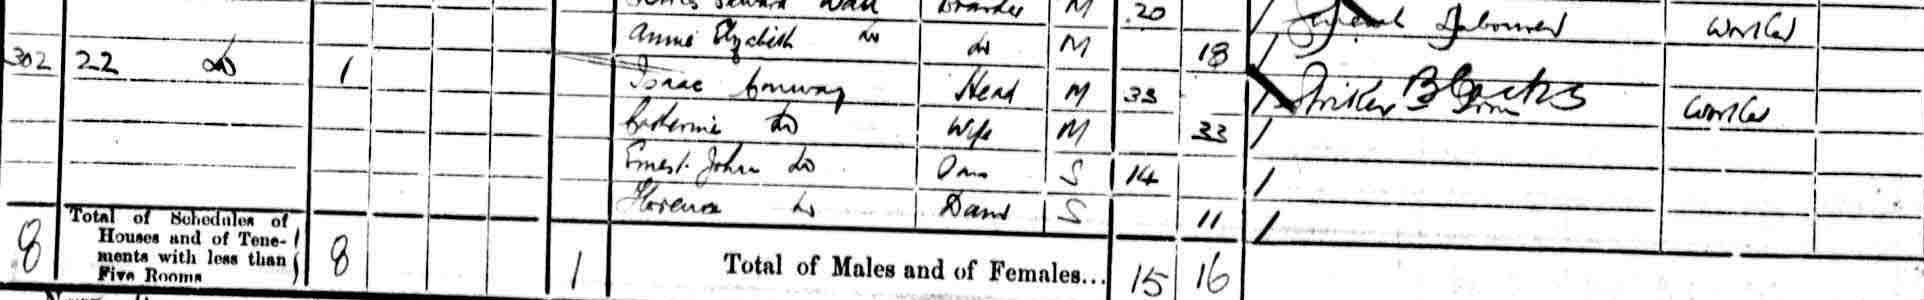 1901 Census showing Ernest John's family